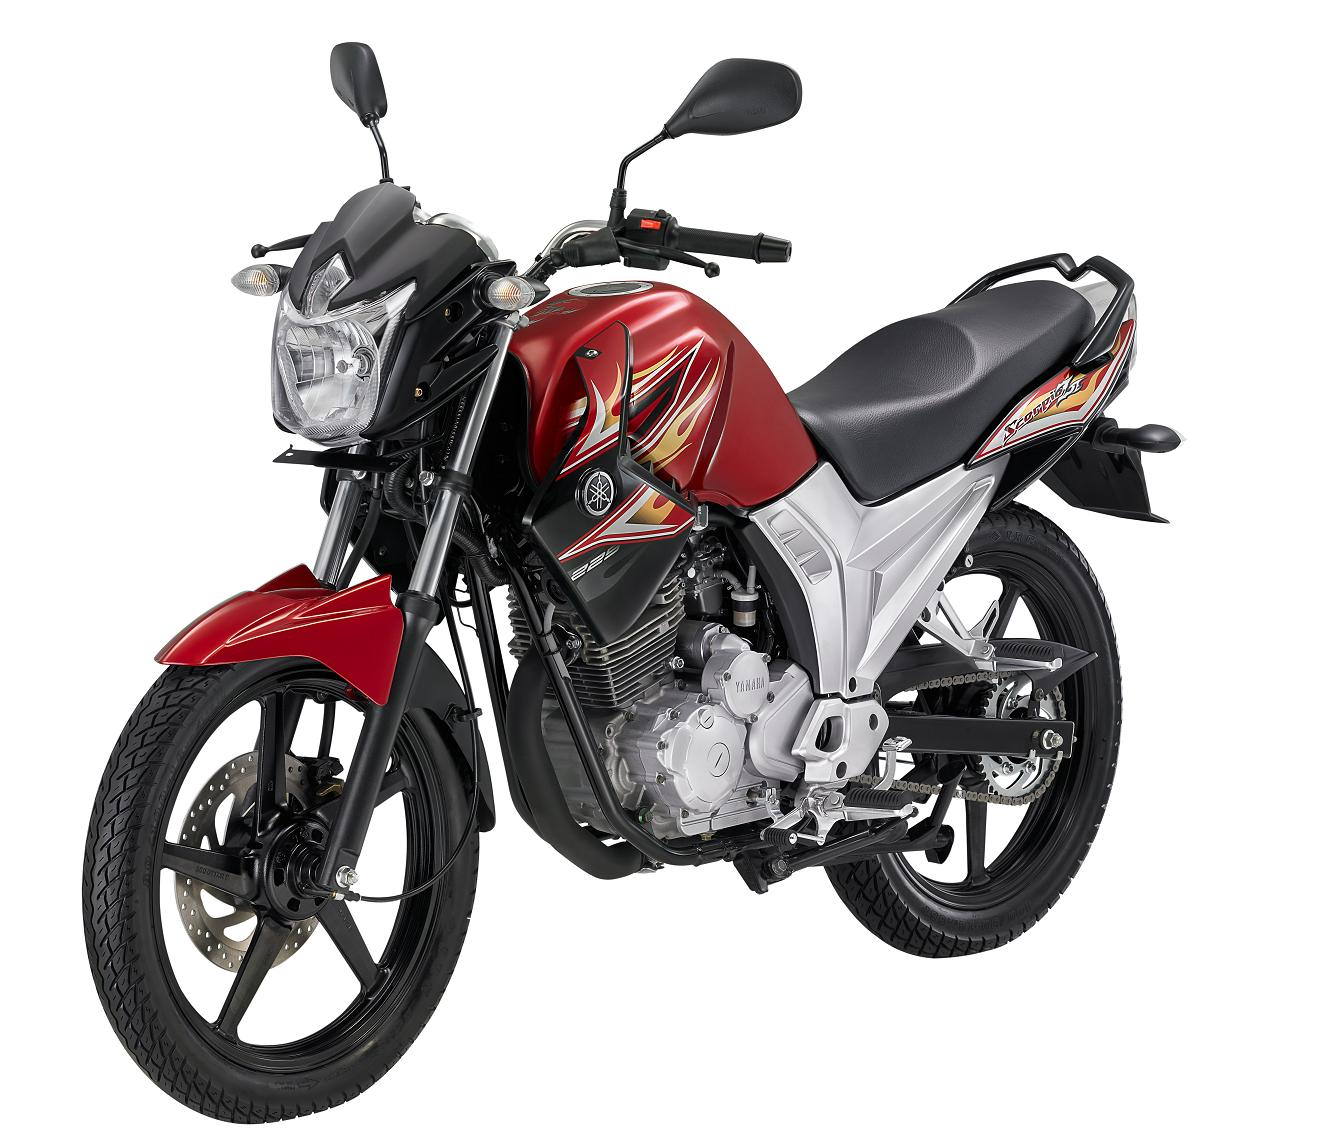 specification of yamaha scorpio   Yamaha Honda Suzuki Kawasaki Ducati